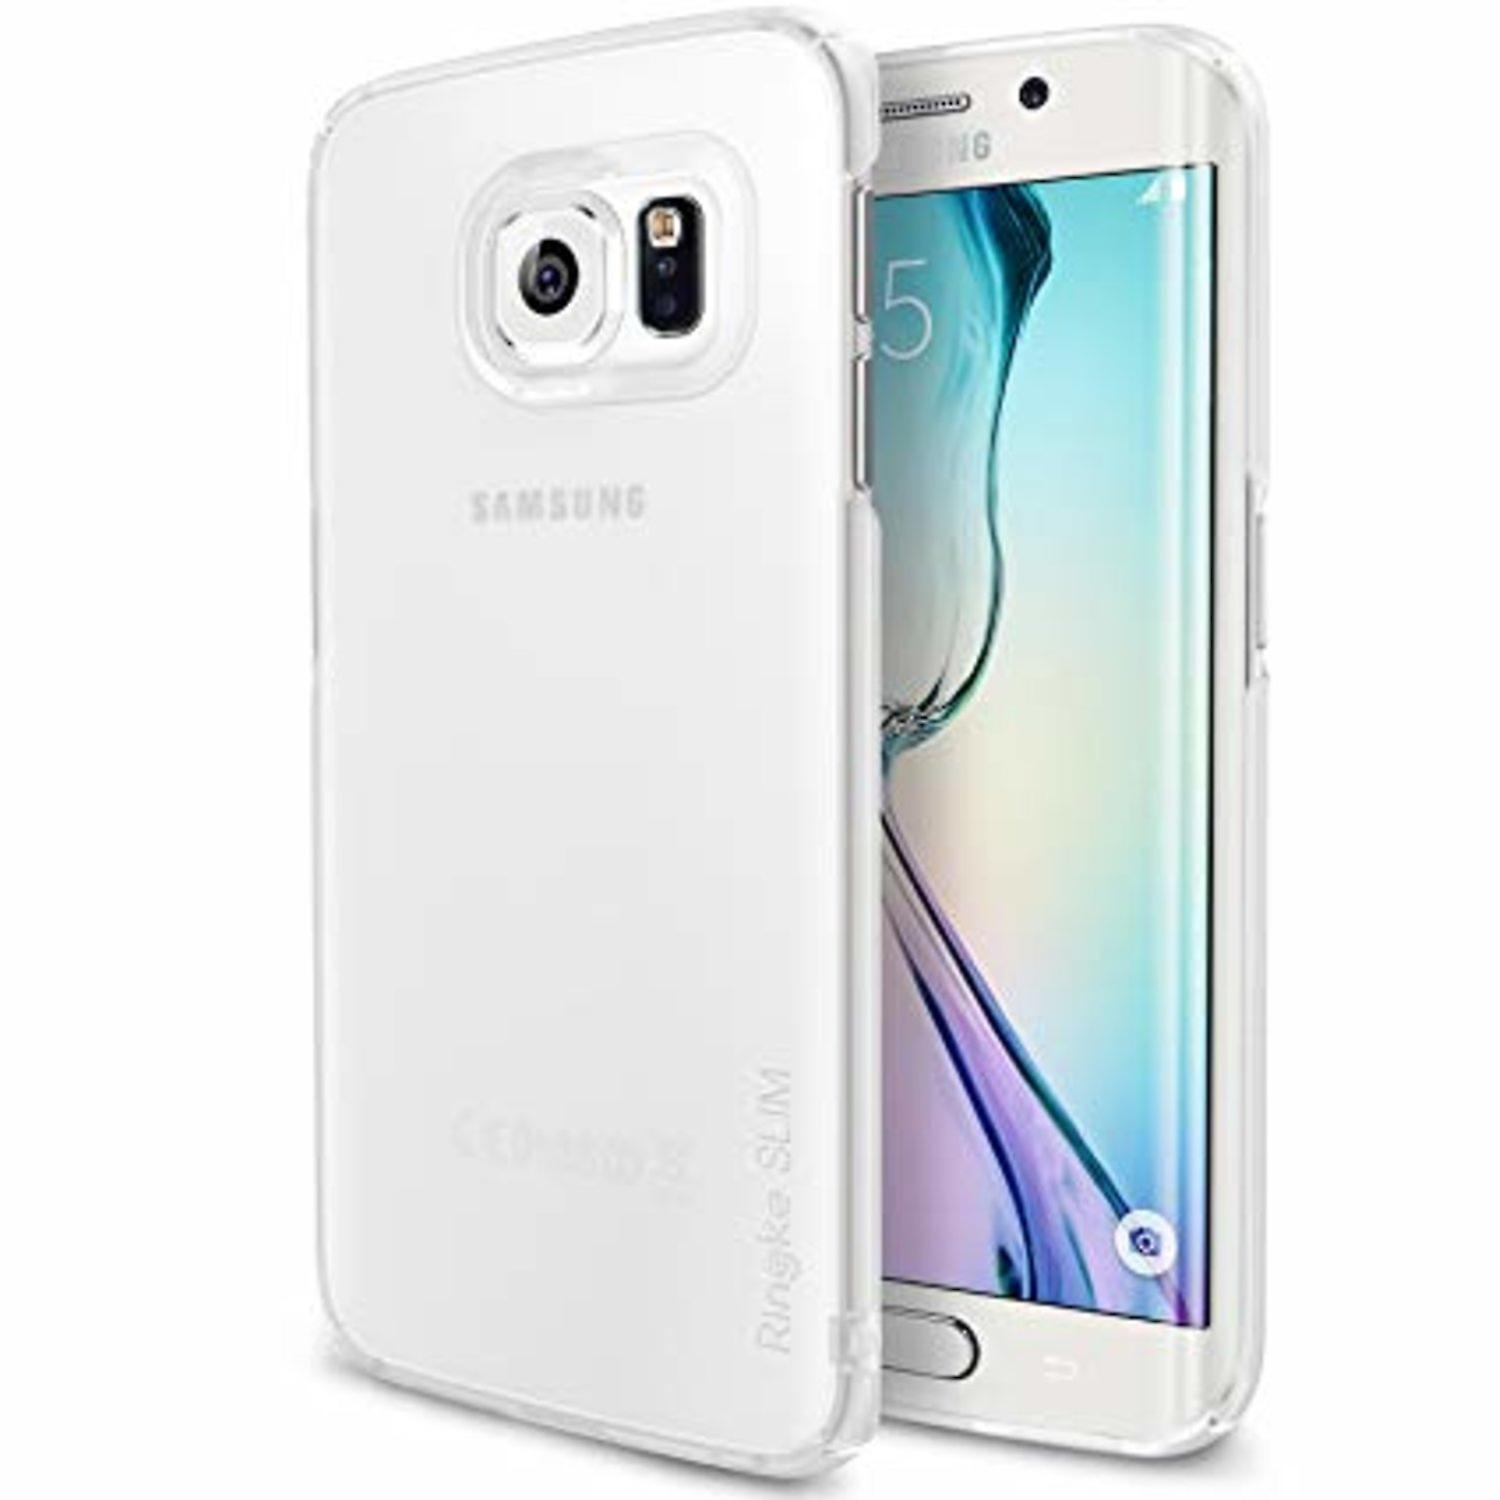 Mobilskal till Samsung Galaxy S6 edge Ultra Thin 0.4mm Vit